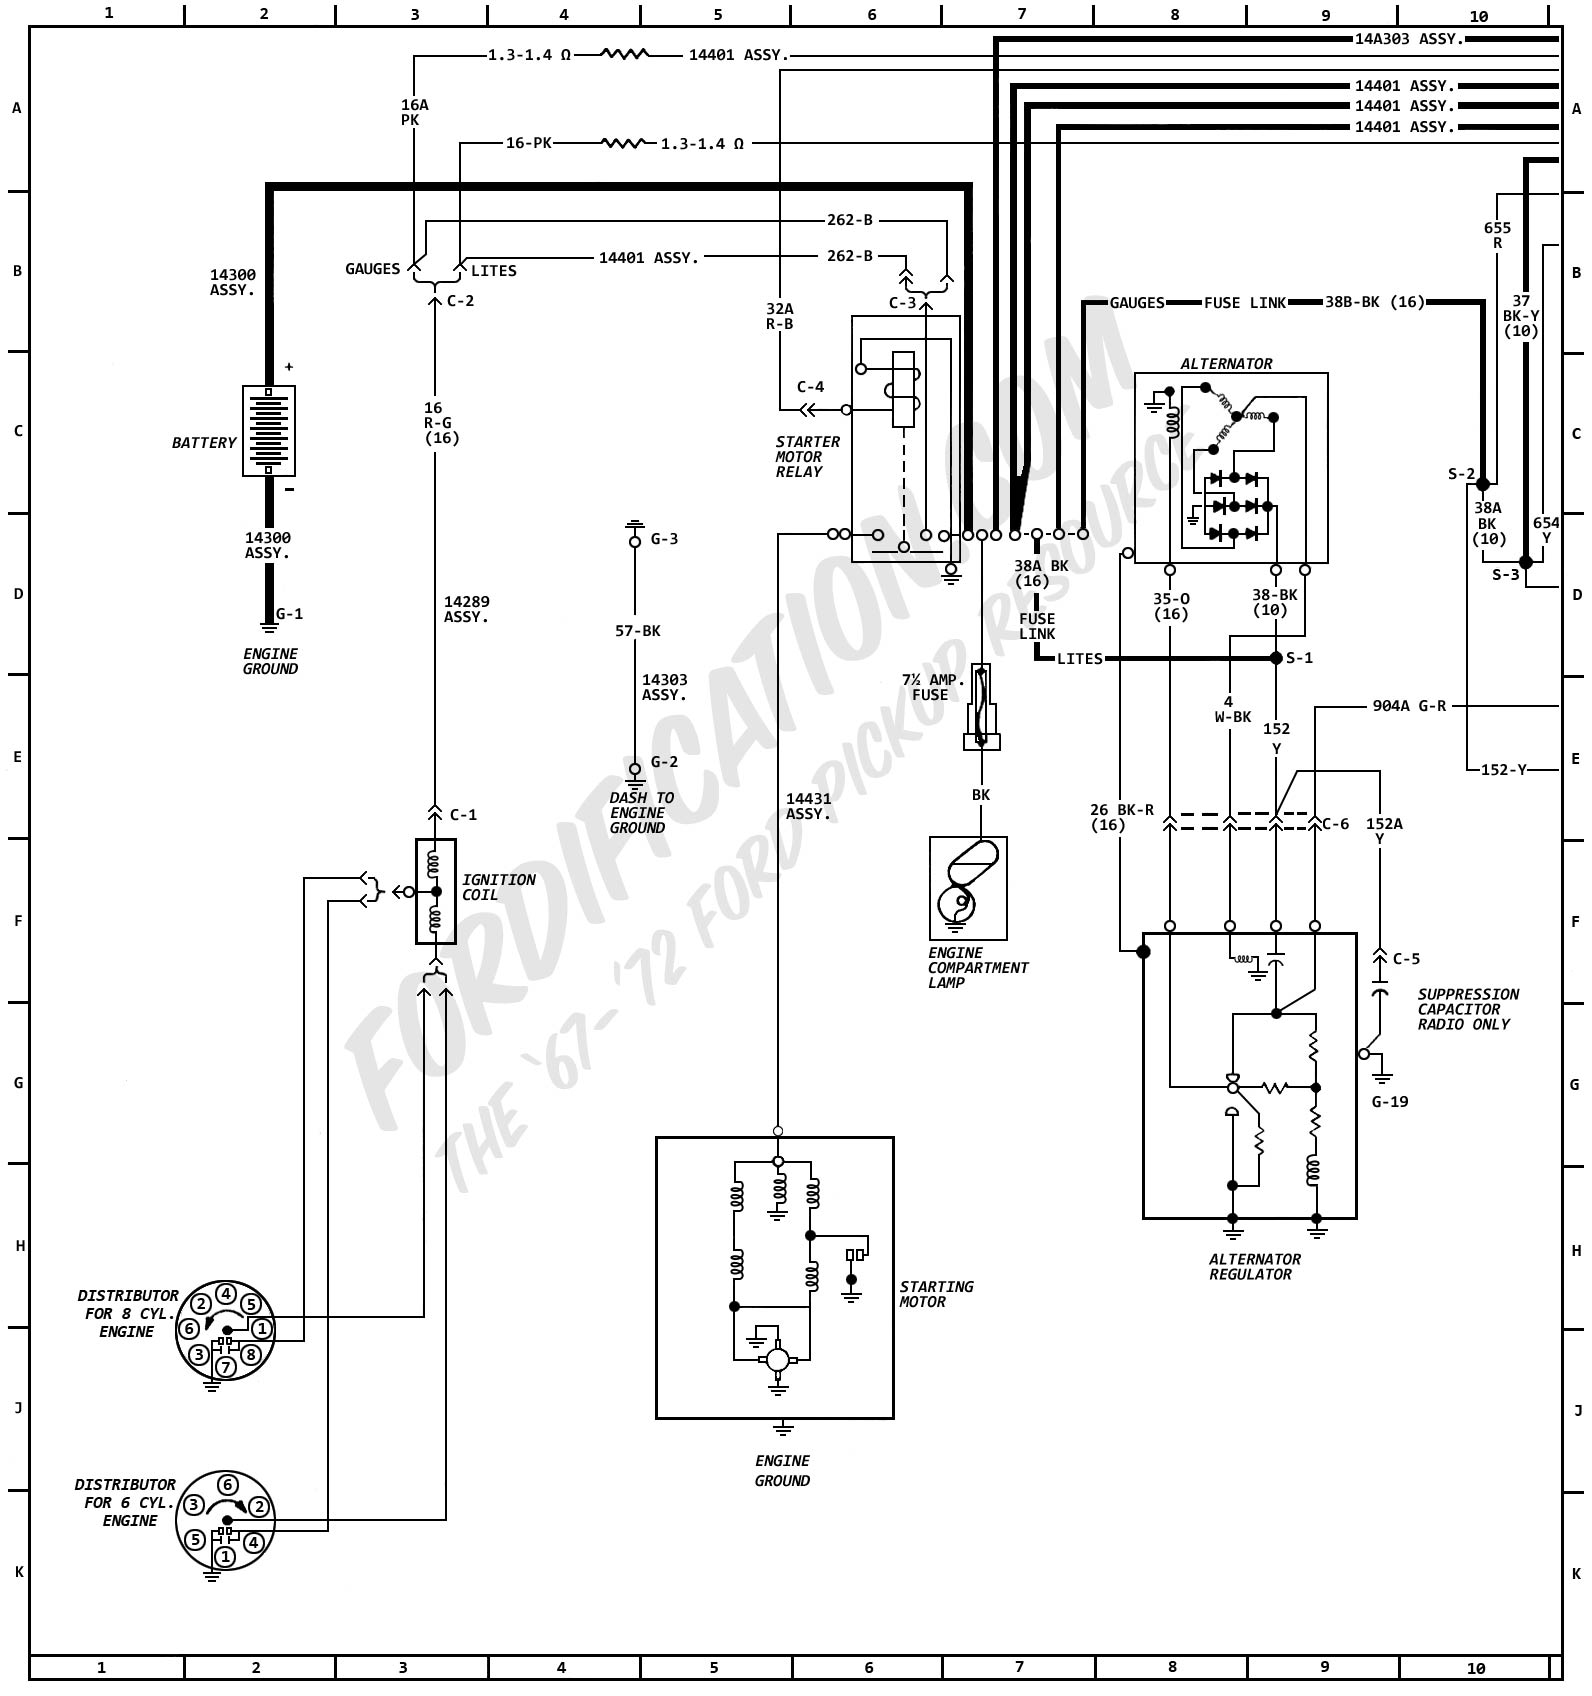 1972MasterWiring_01 1972 ford truck wiring diagrams fordification com Ford Wiring Harness Diagrams at soozxer.org